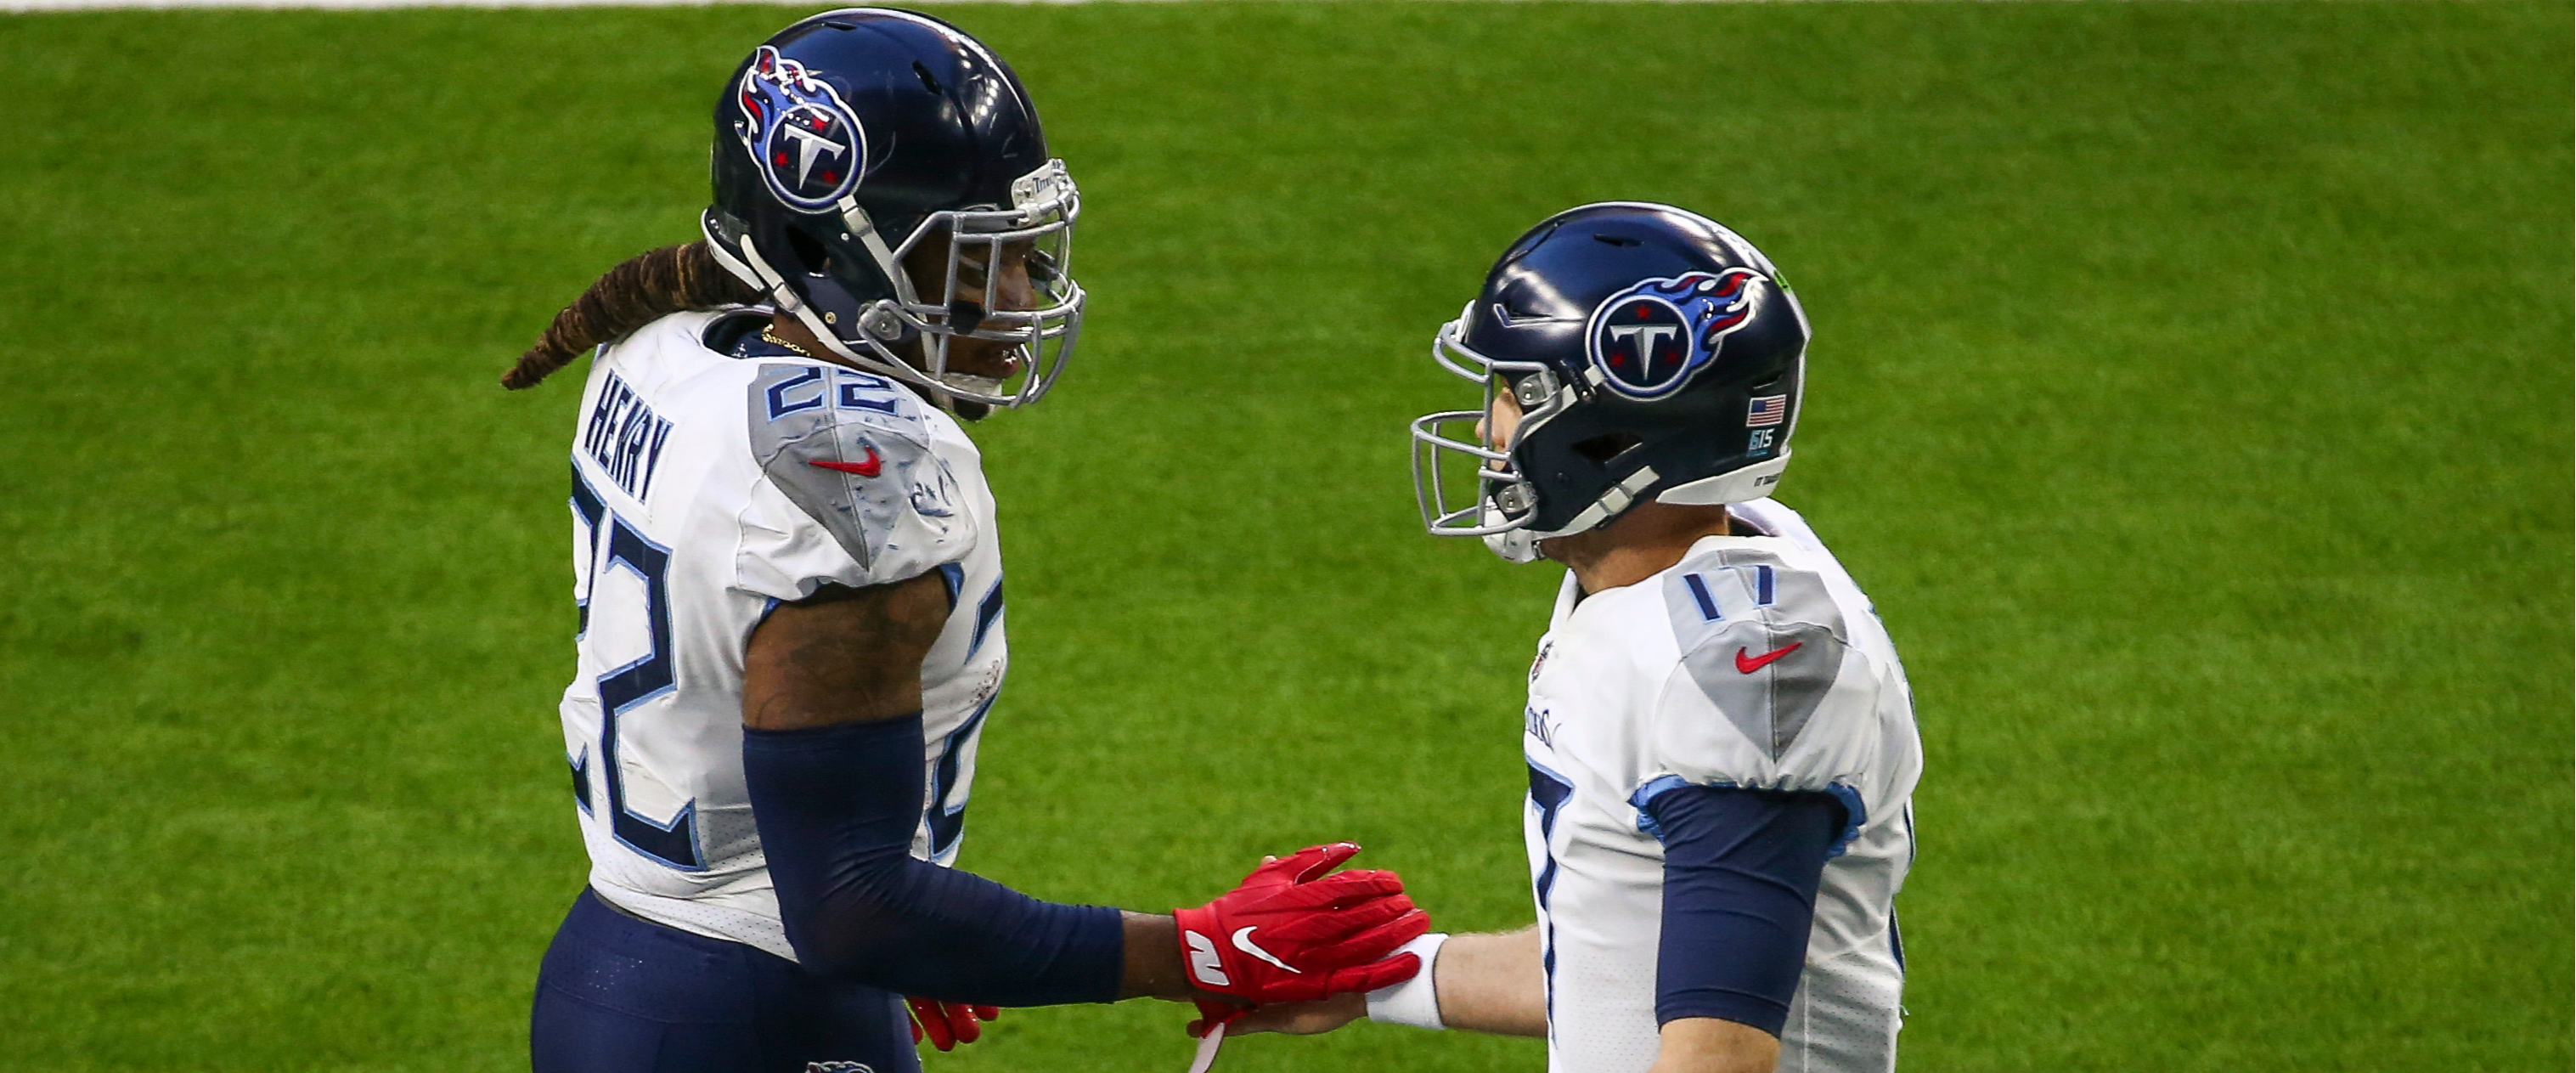 Titans: The 3 best players this season